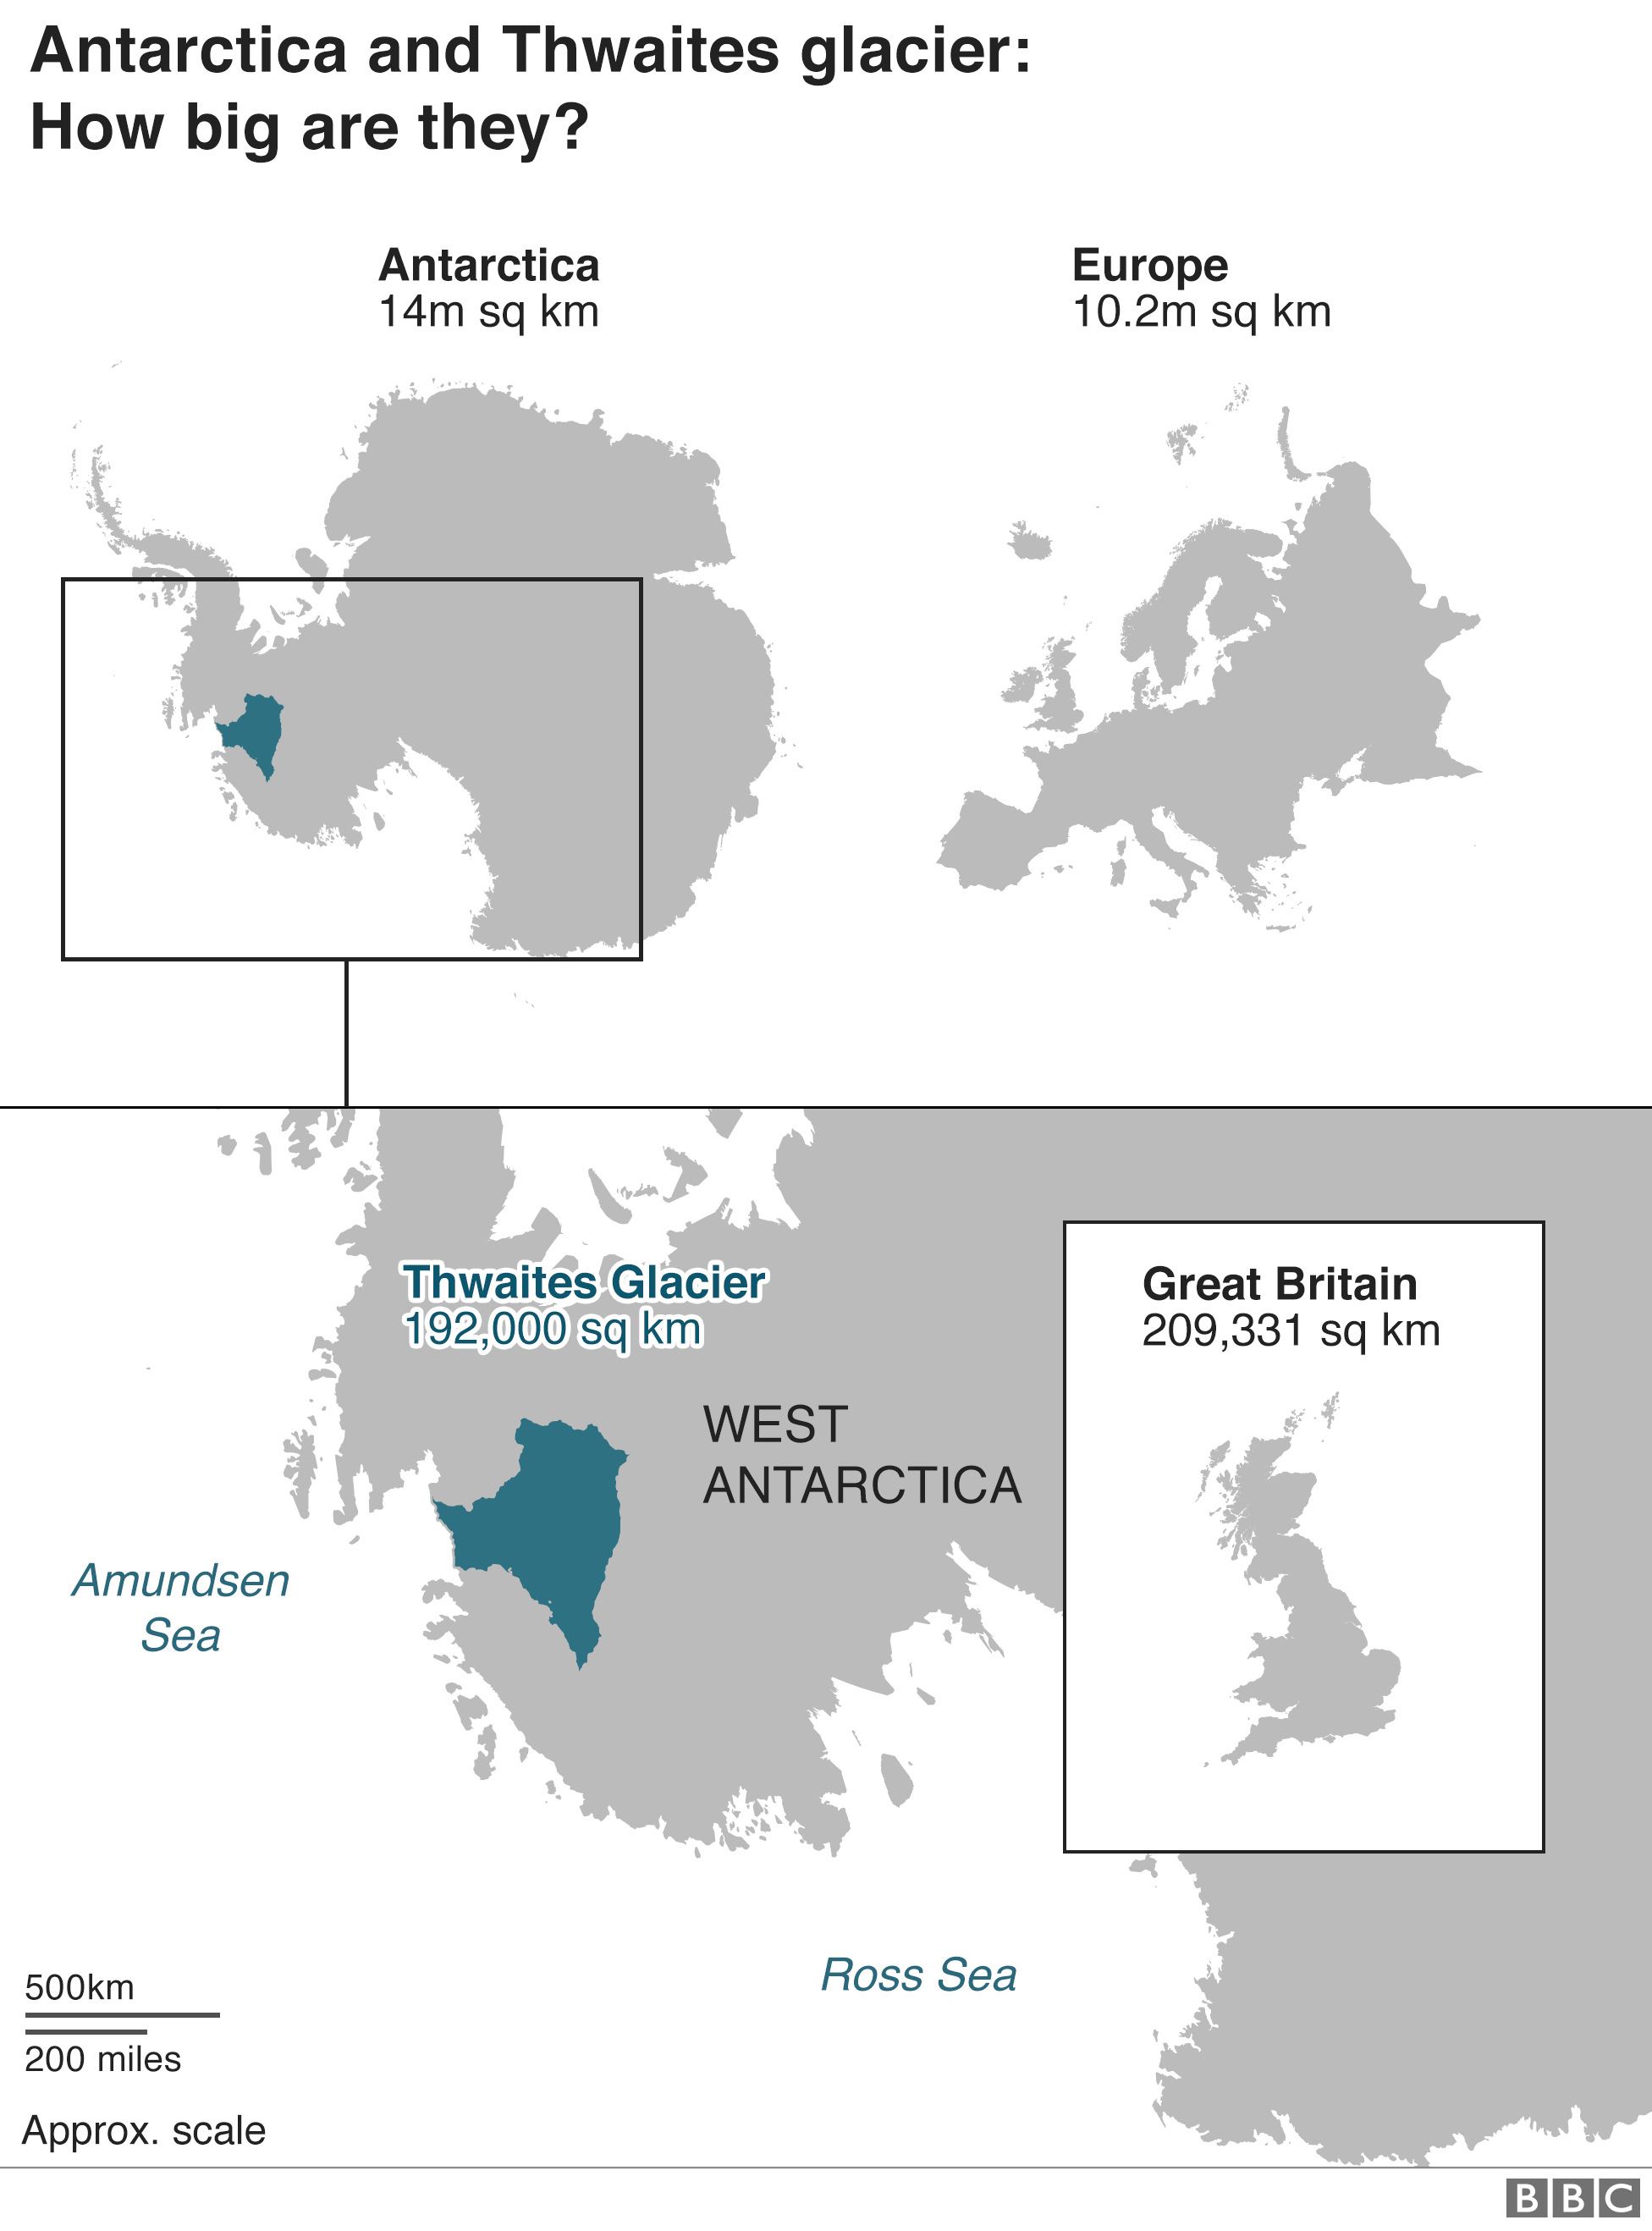 Size comparison of Antarctica and Thwaites glacier